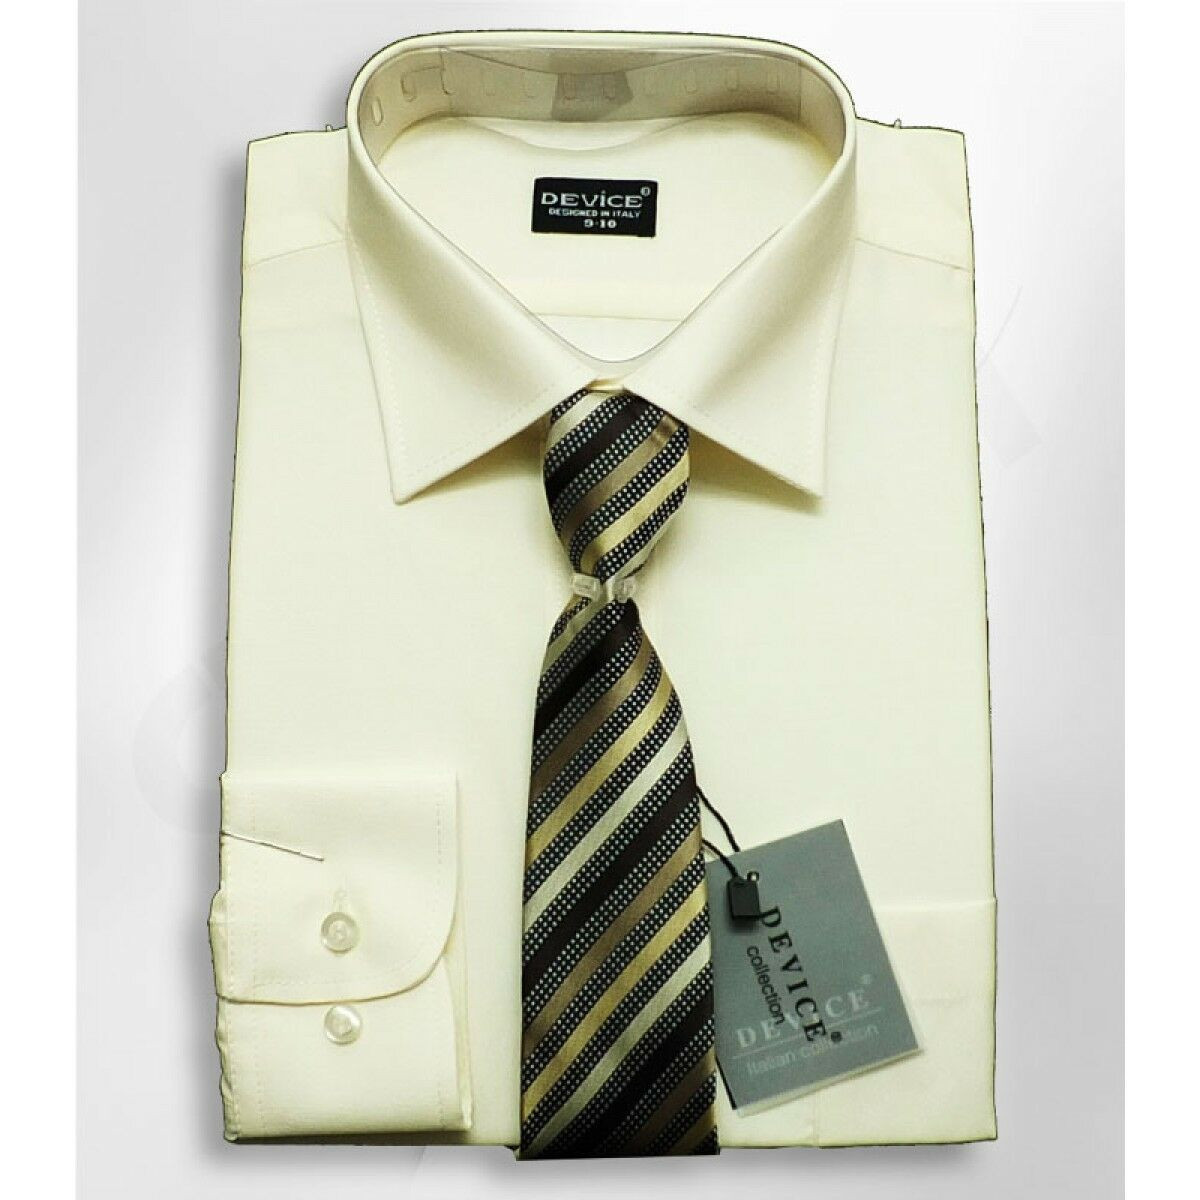 f4f6db2bd Details about Boys Formal Cream Shirt And Tie Set Wedding Prom Ivory Smart  Device Suit Shirts